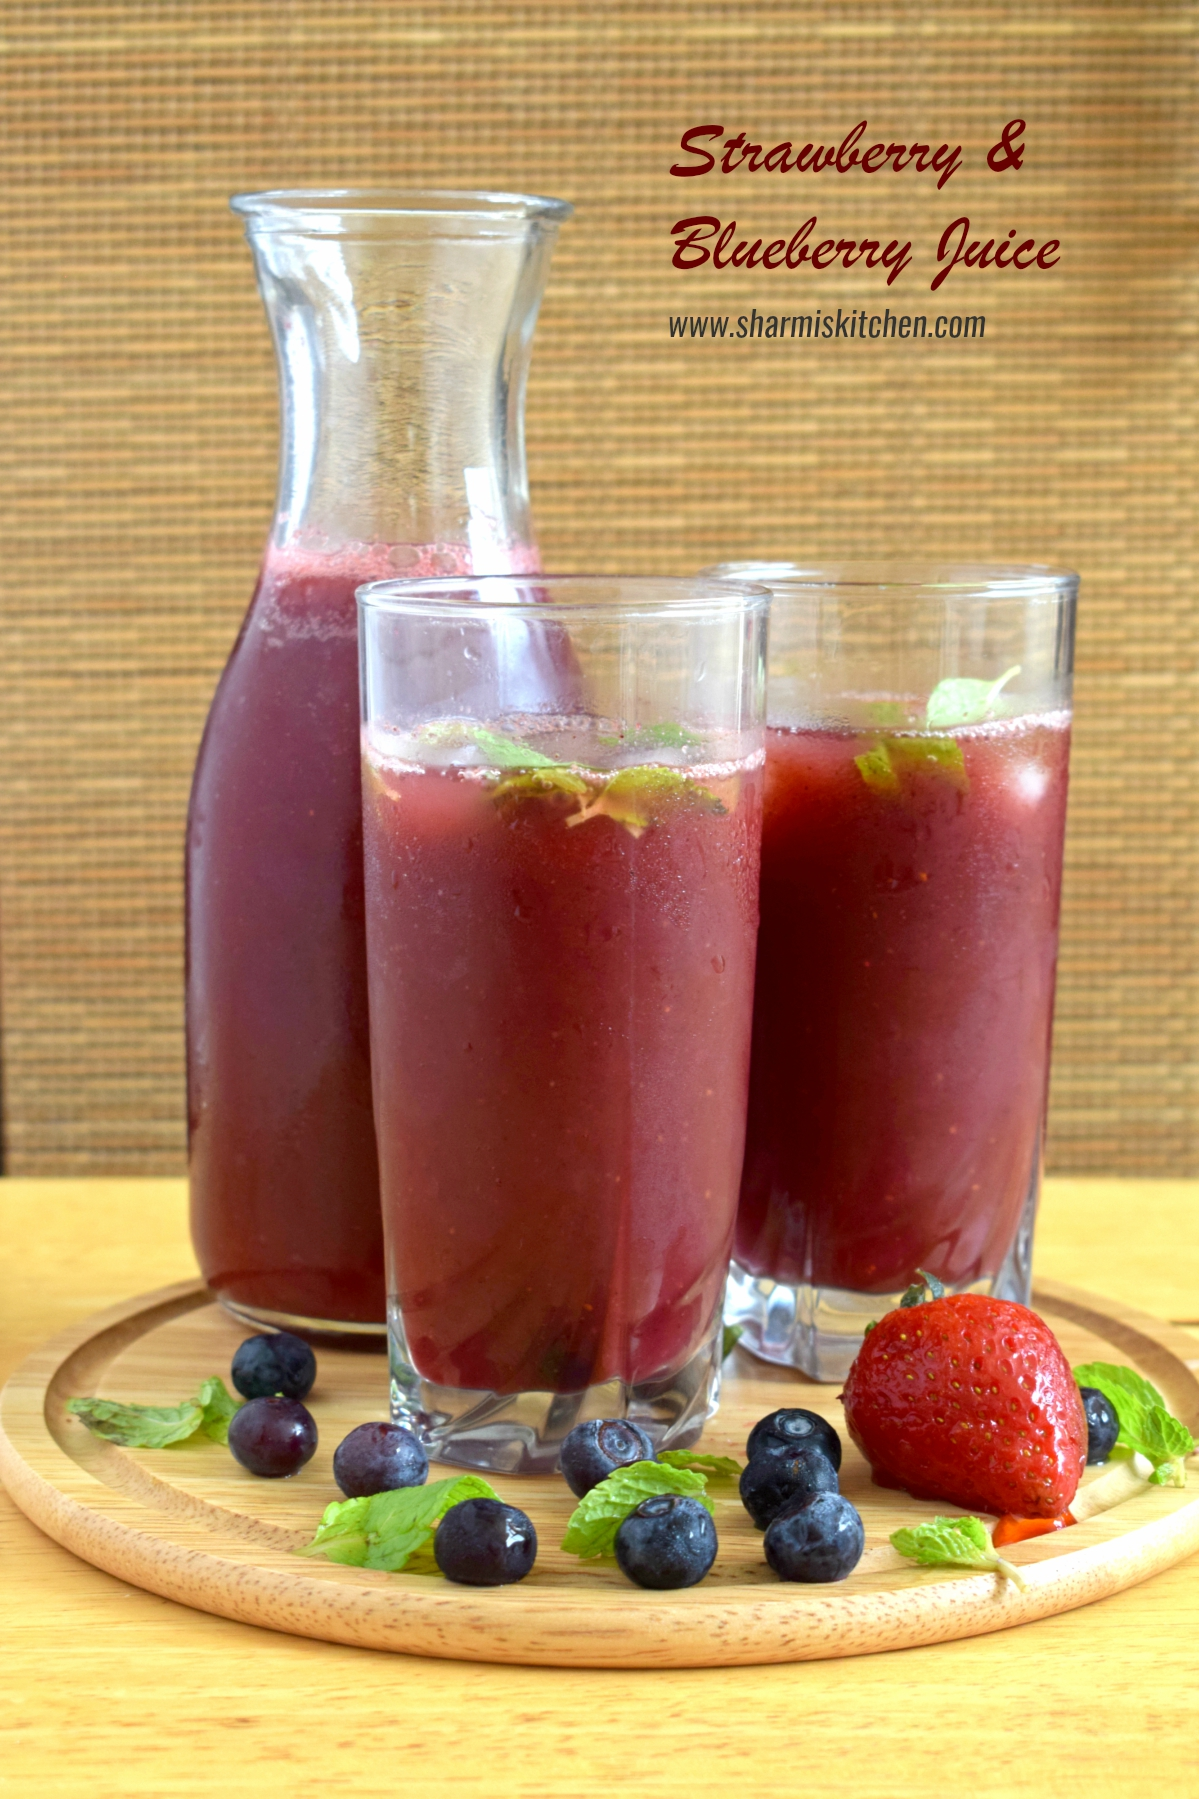 Strawberry and Blueberry juice Recipe